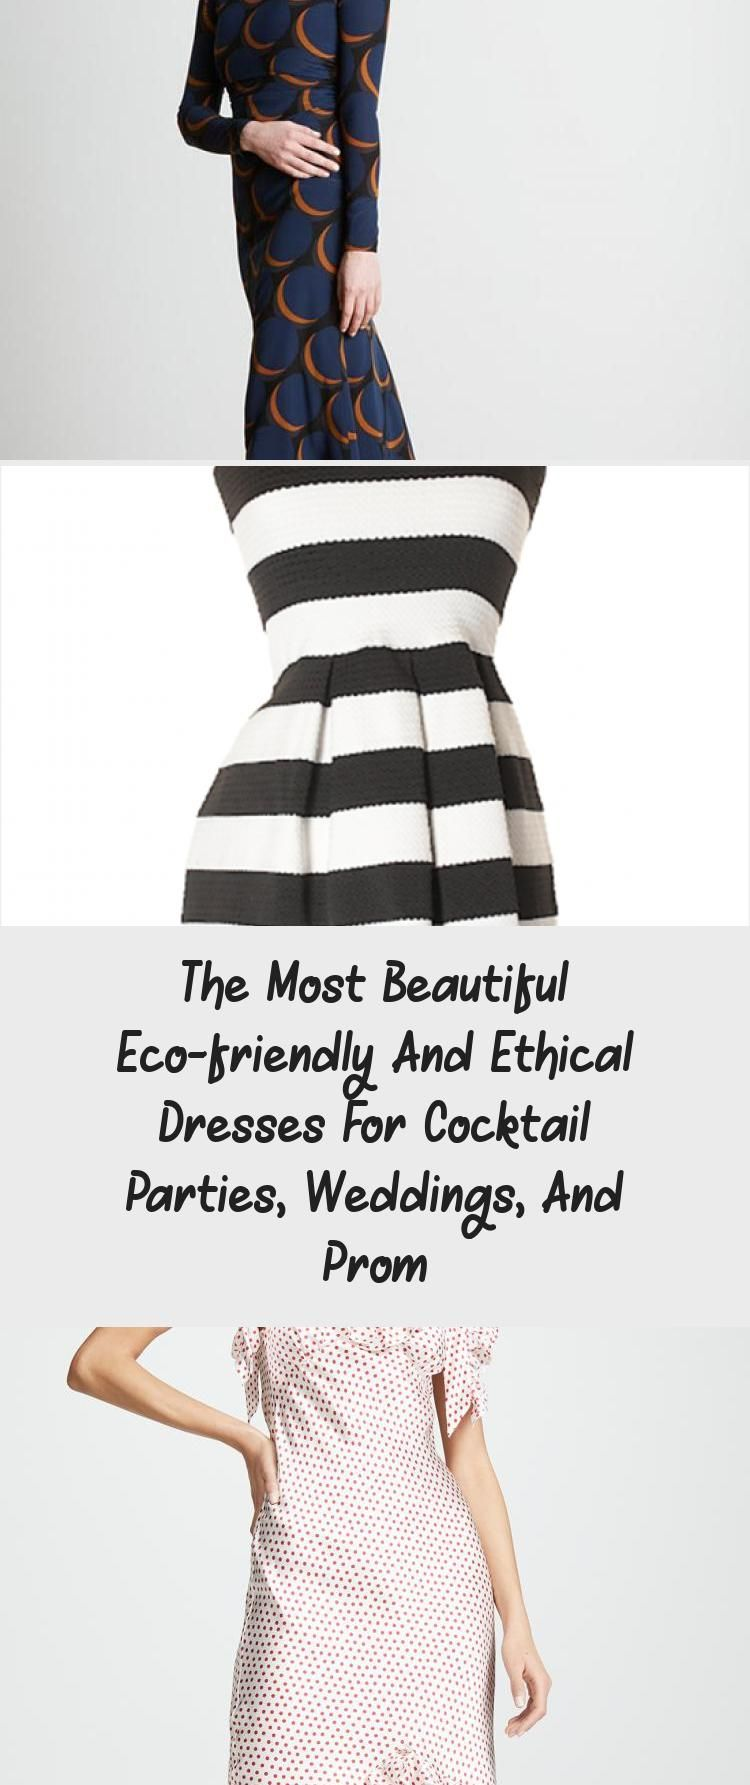 The Most Beautiful Eco-friendly And Ethical Dresses For Cocktail Parties, Weddings, And Prom - Recipe of The Day #cocktailpartydresses